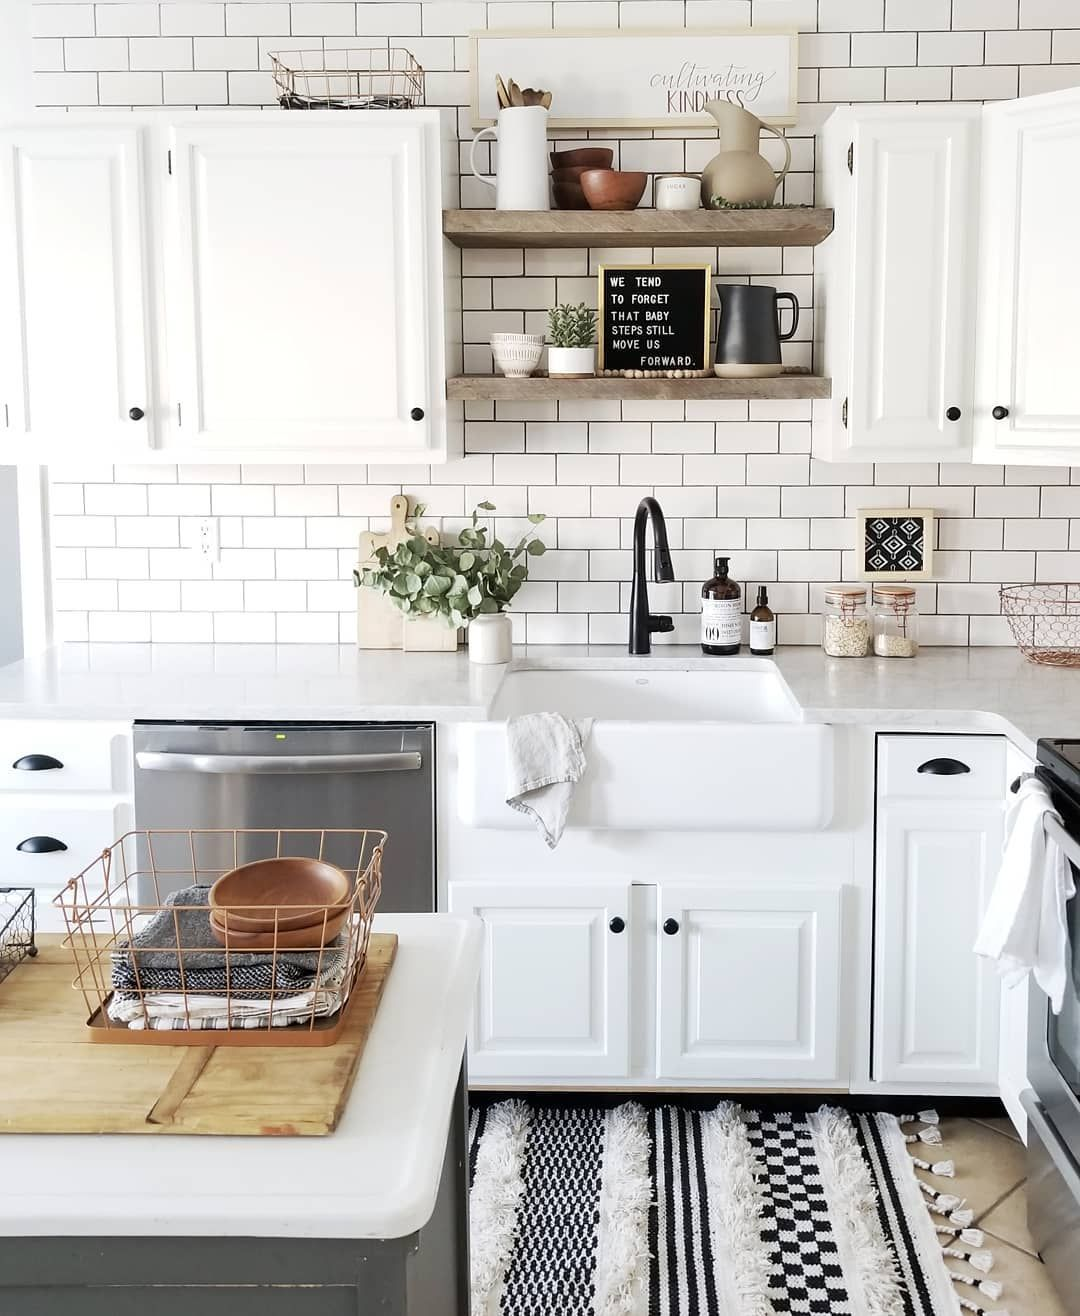 Cynthia Harper On Instagram Removing The Upper Cabinets Above The Sink And Replacing Them With Open Shelves Was One Of Th Kokken Kokken Inspiration Drommehus